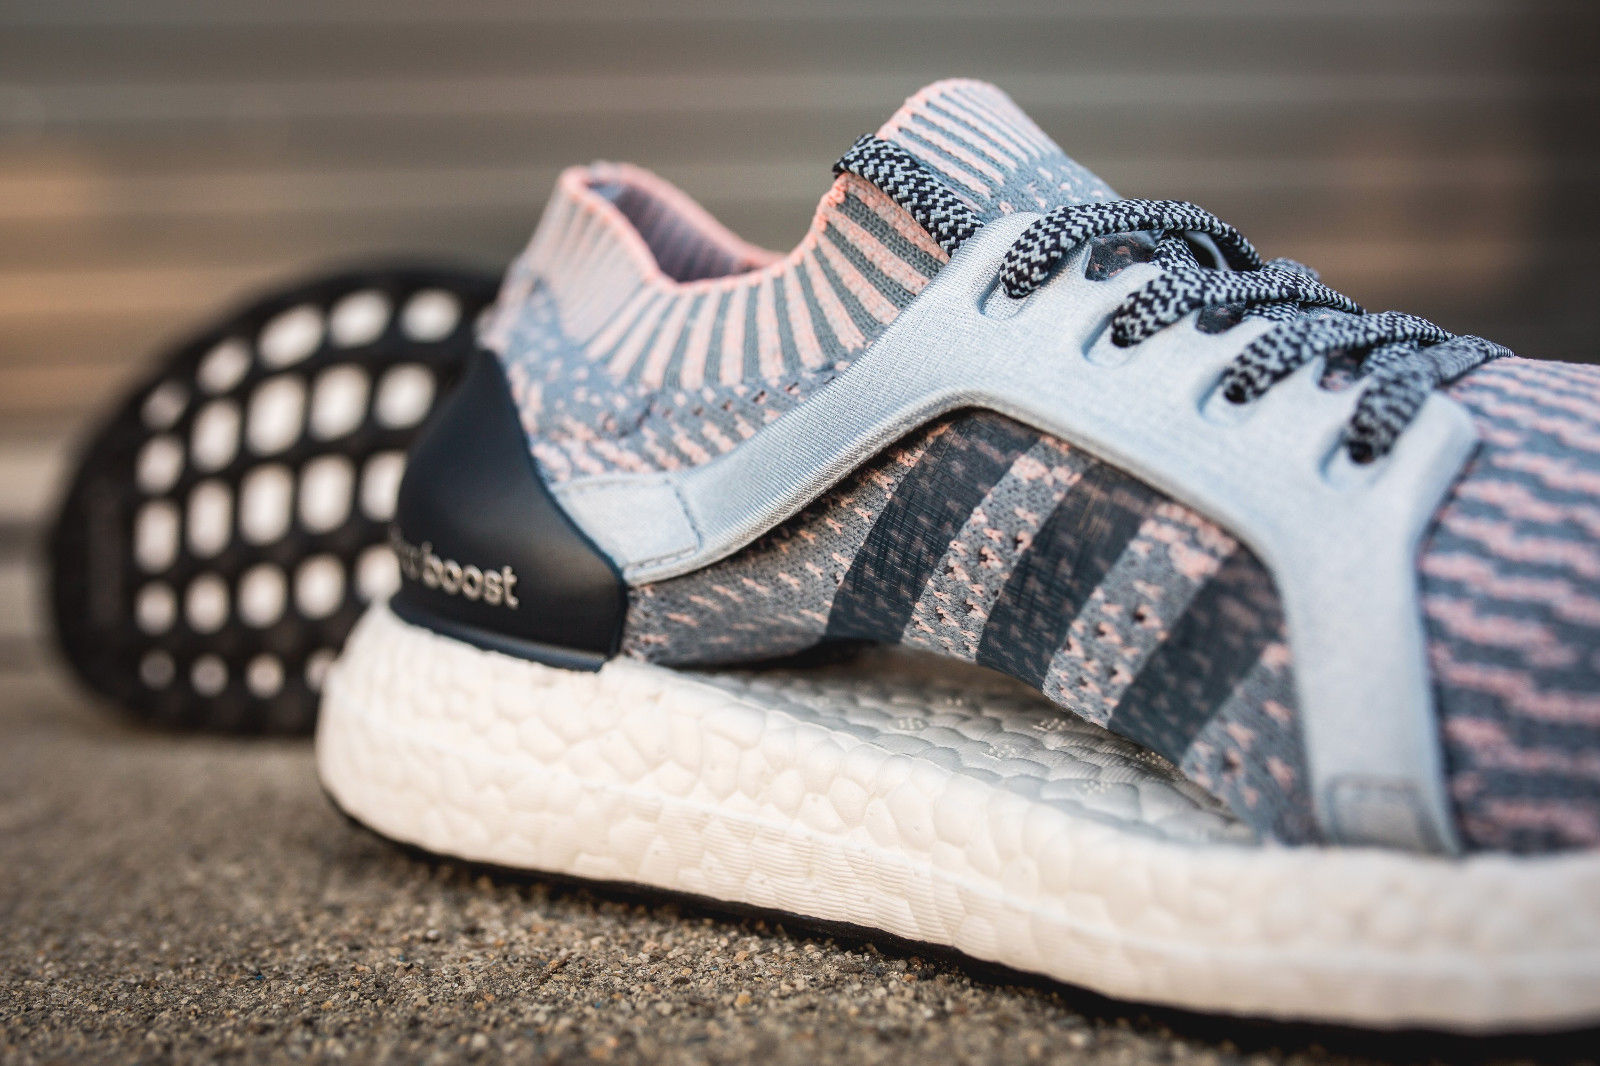 5eae7ffeef5f5 ADIDAS Women s UltraBOOST X Running Shoes sz 8.5 Tactile Blue Coral Ultra  Boost